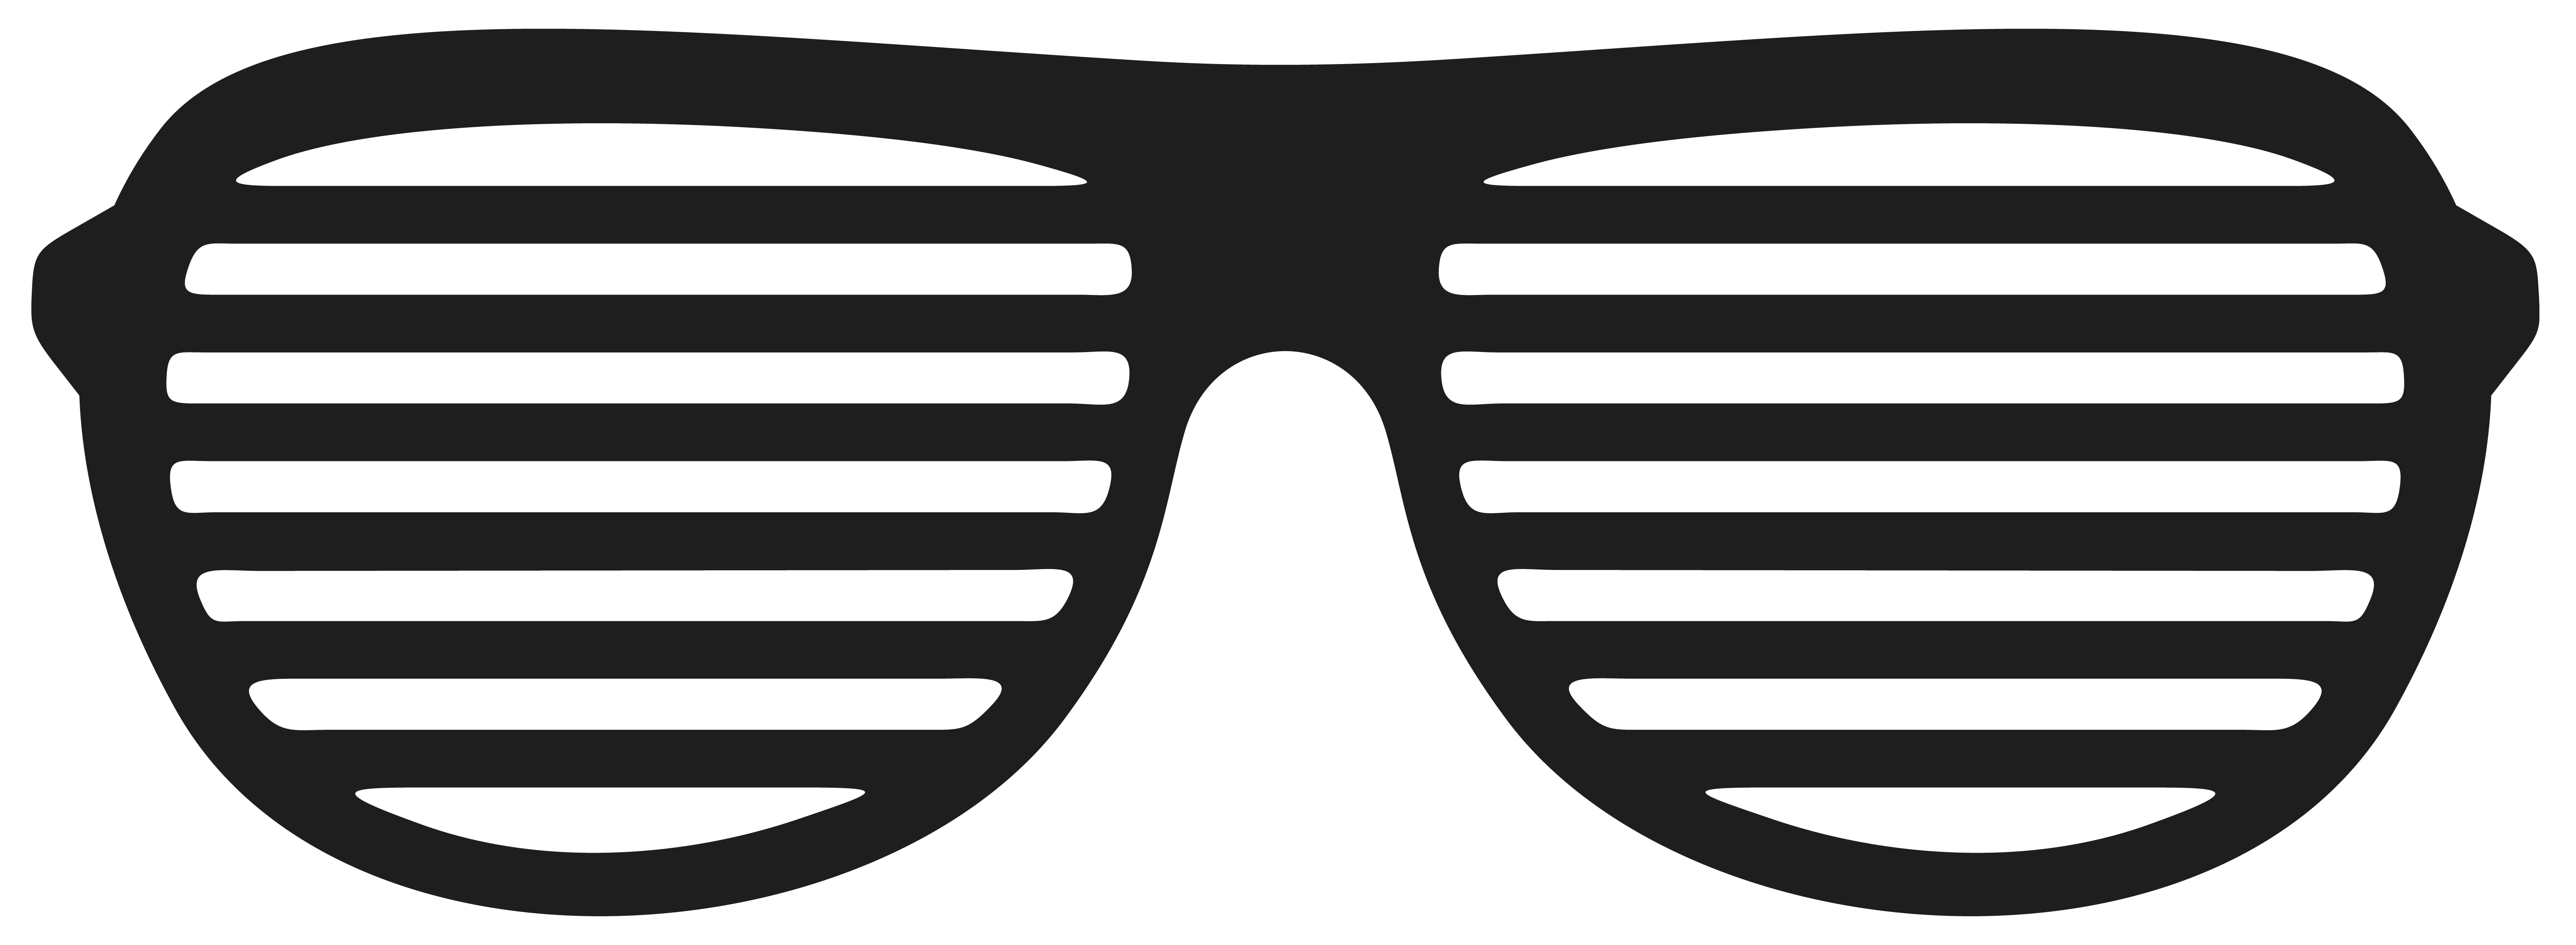 Sunglasses clipart striped. Movember shutter glasses png